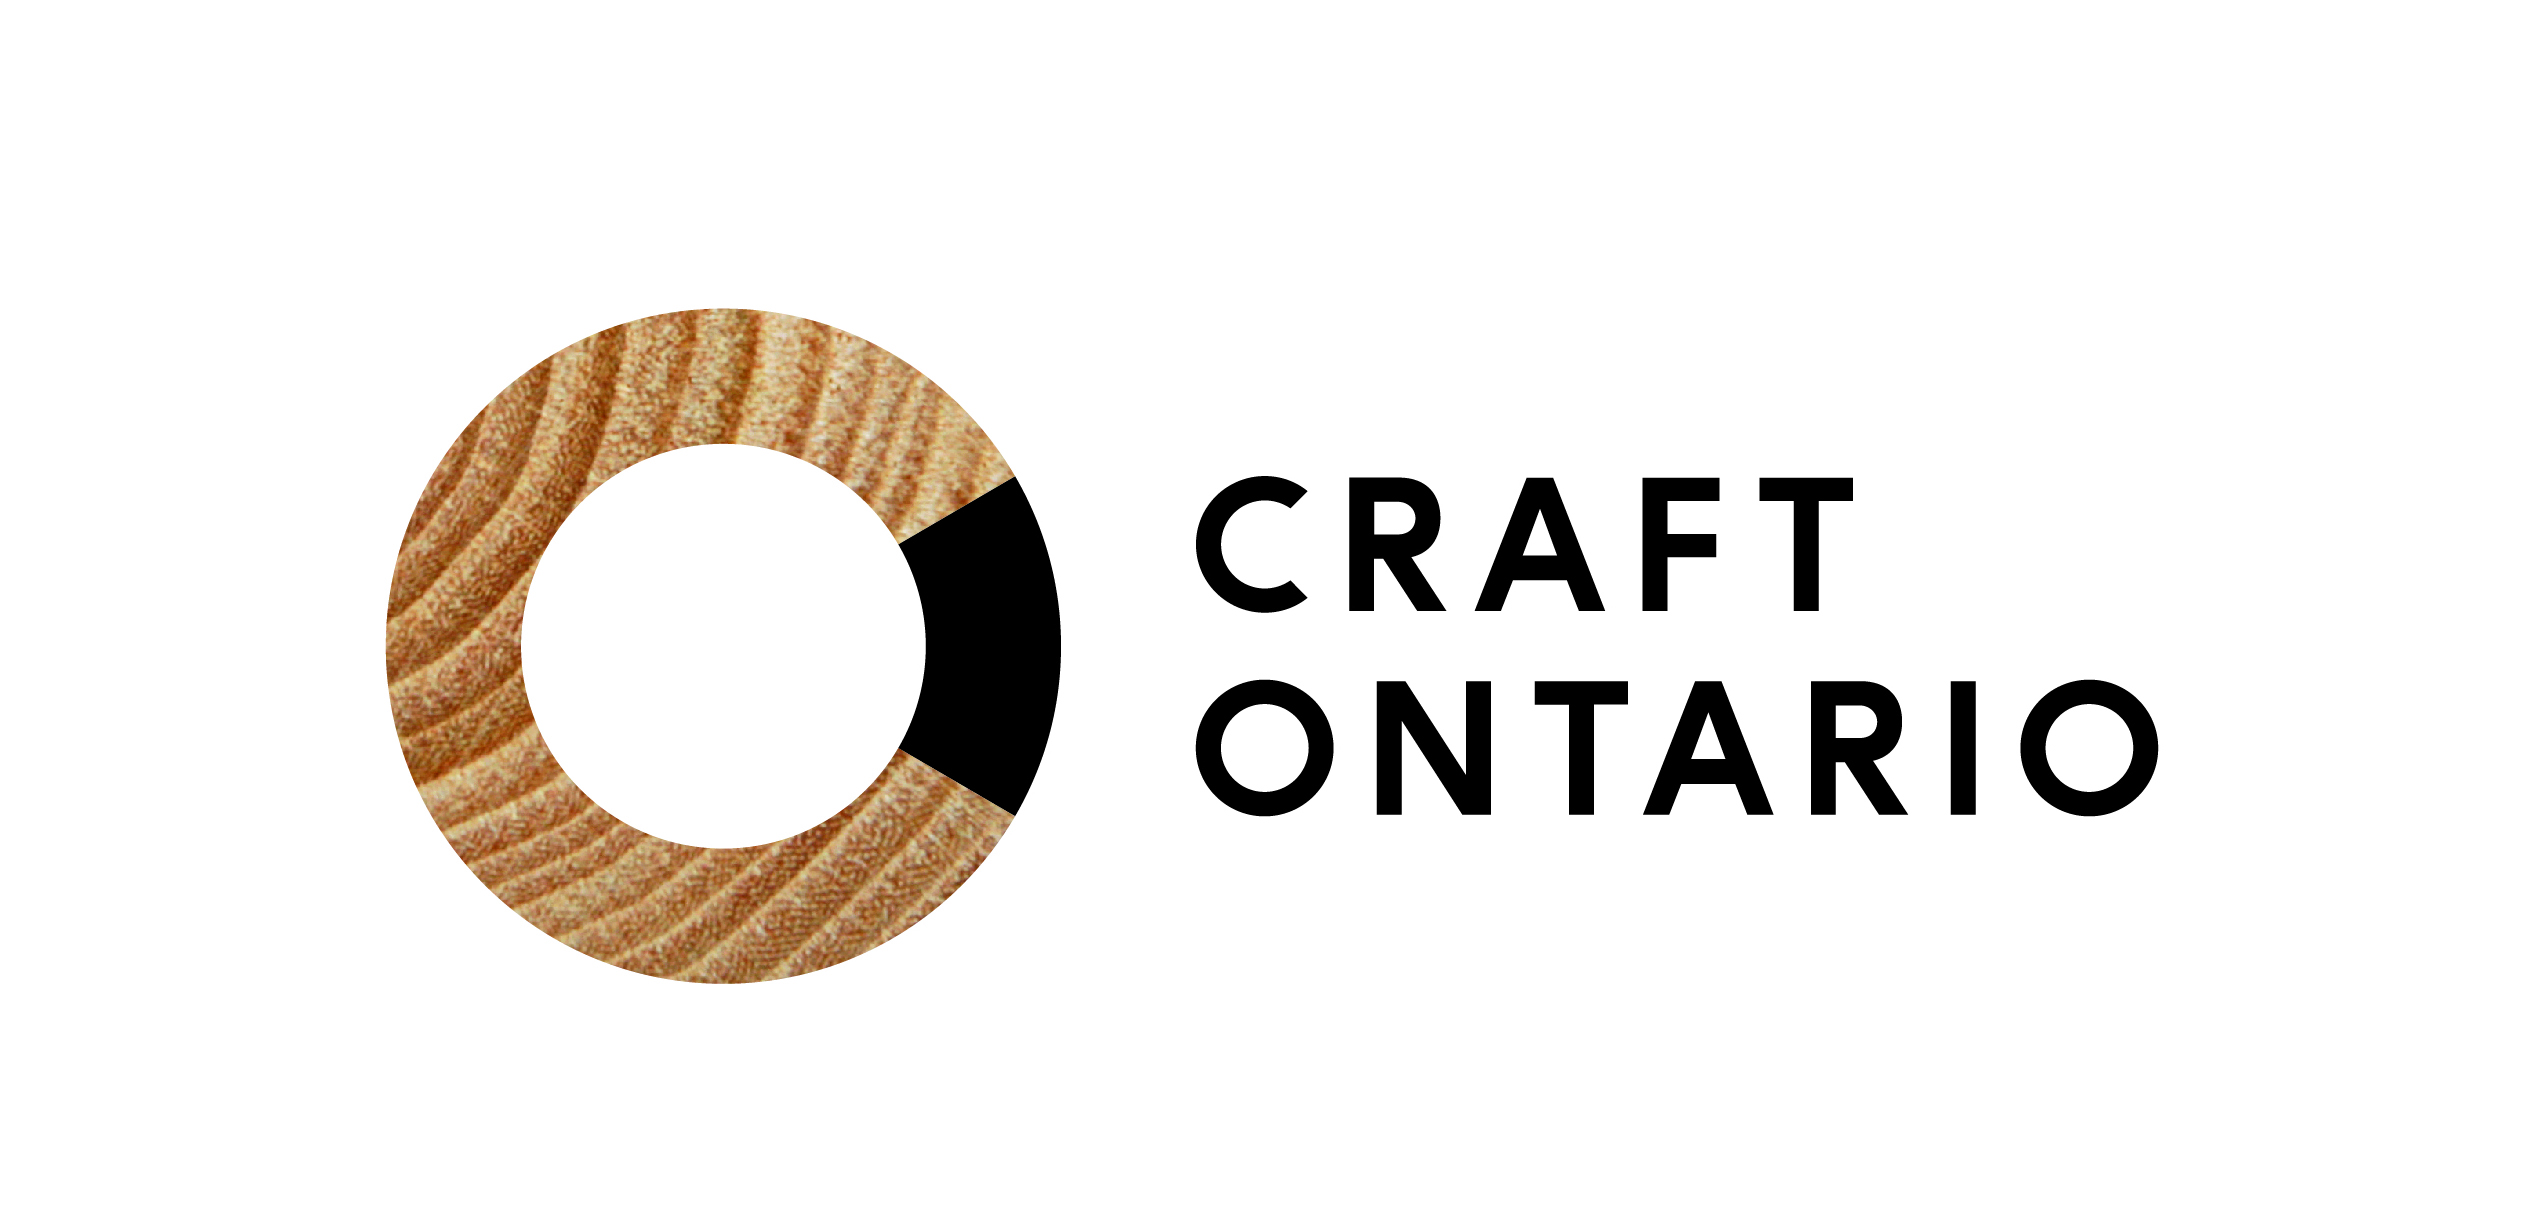 Do Creative Craft Logo For You With My On Creativity By Vuong92 Bkru